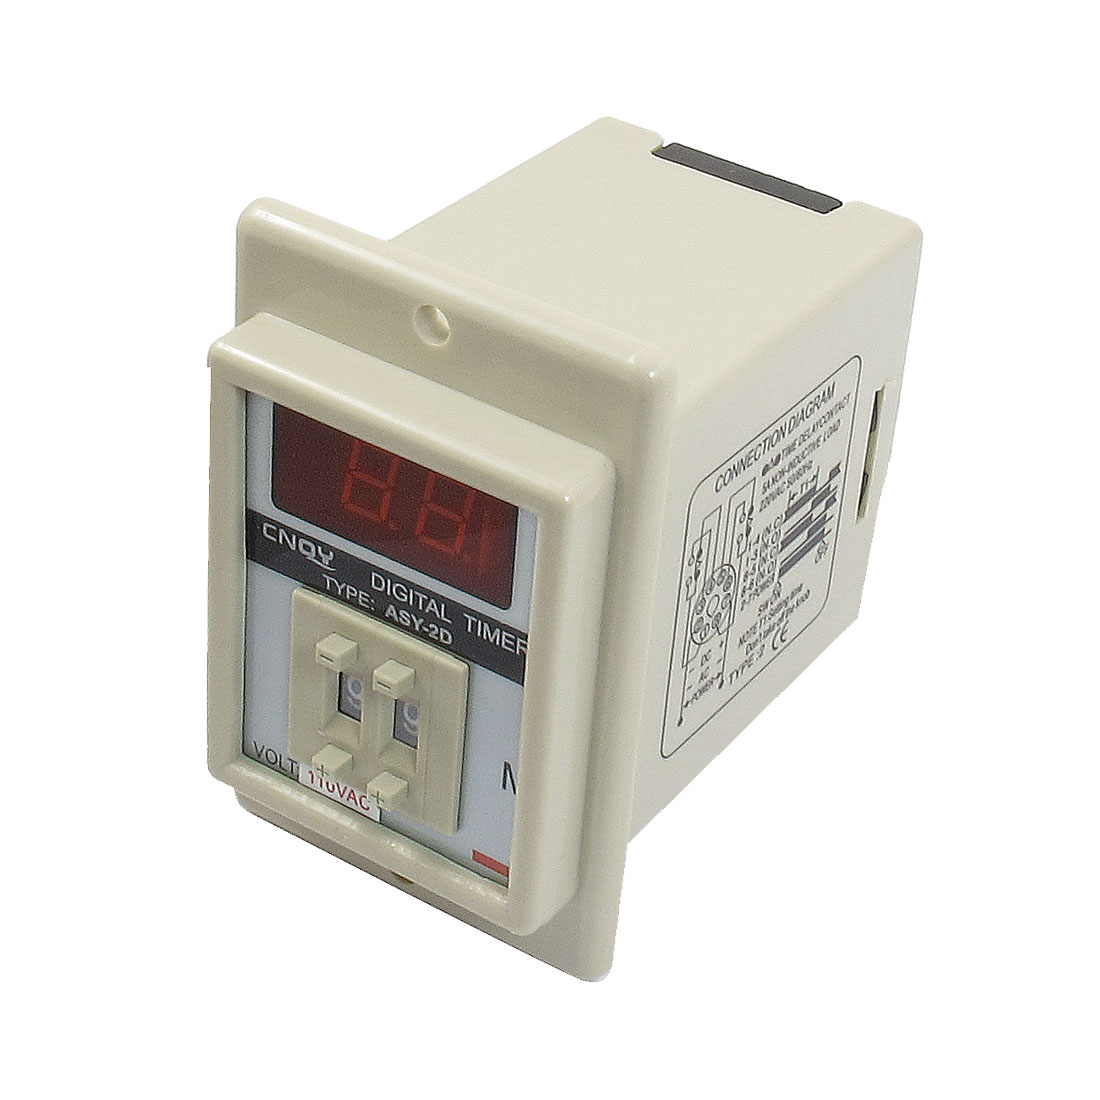 AC 110V 8 Pin 0.1-9.9 Minutes Digital Timer Time Delay Relay Beige ASY-2D